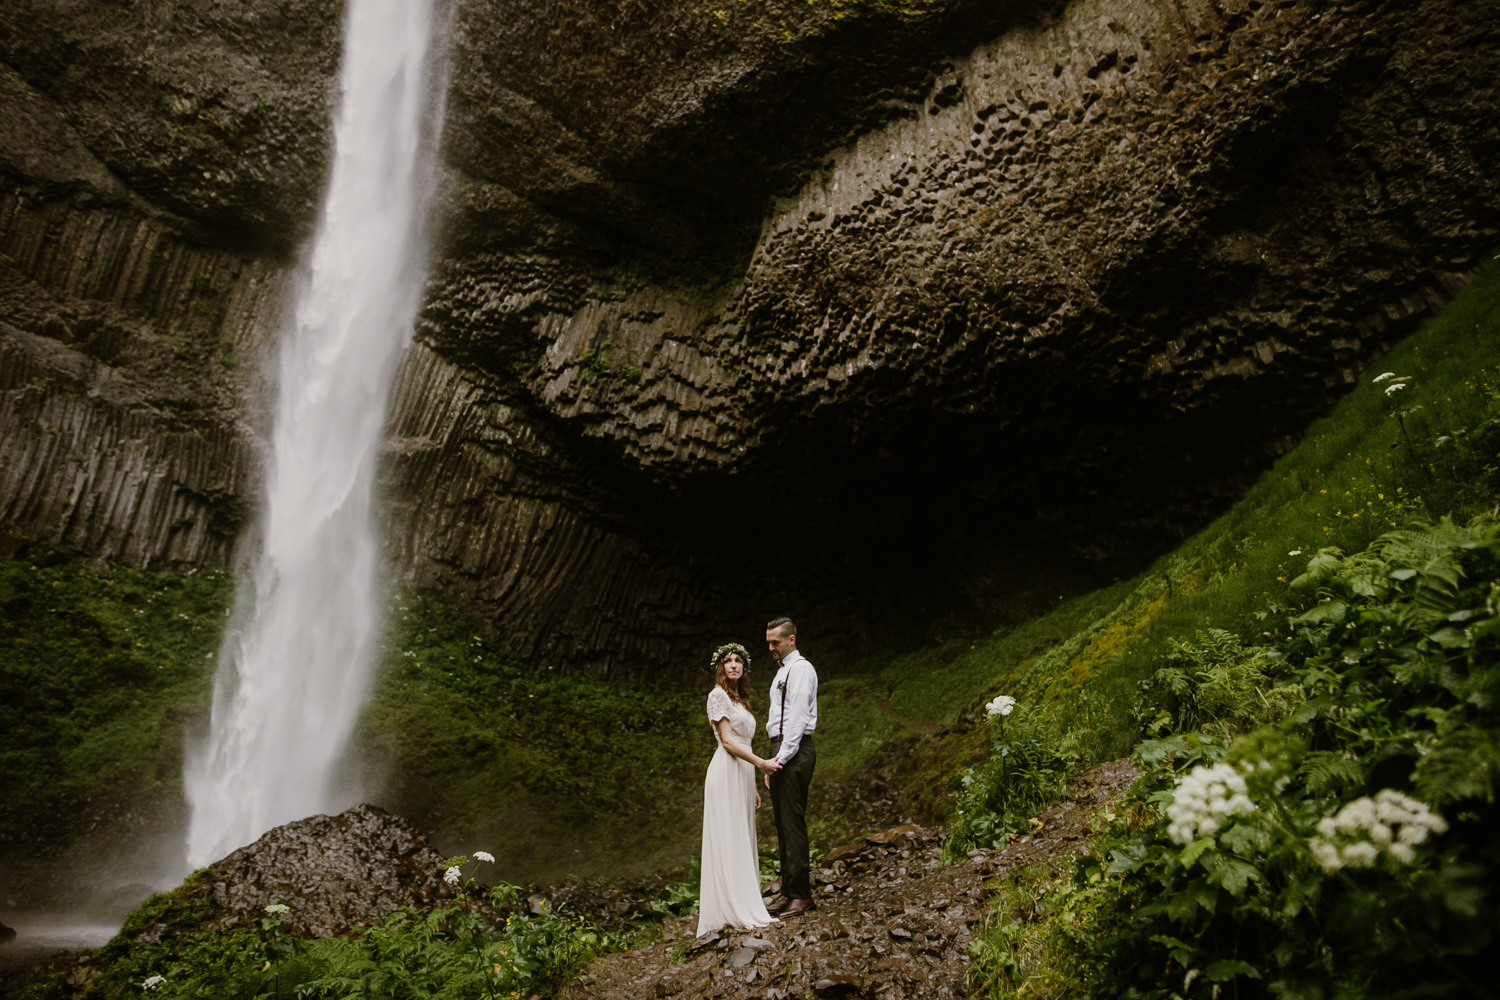 The Columbia Gorge - Stunning overlooks, hundreds of waterfalls, and a pit stop in Hood River for a great beer - the Columbia Gorge is a favorite location for elopements.